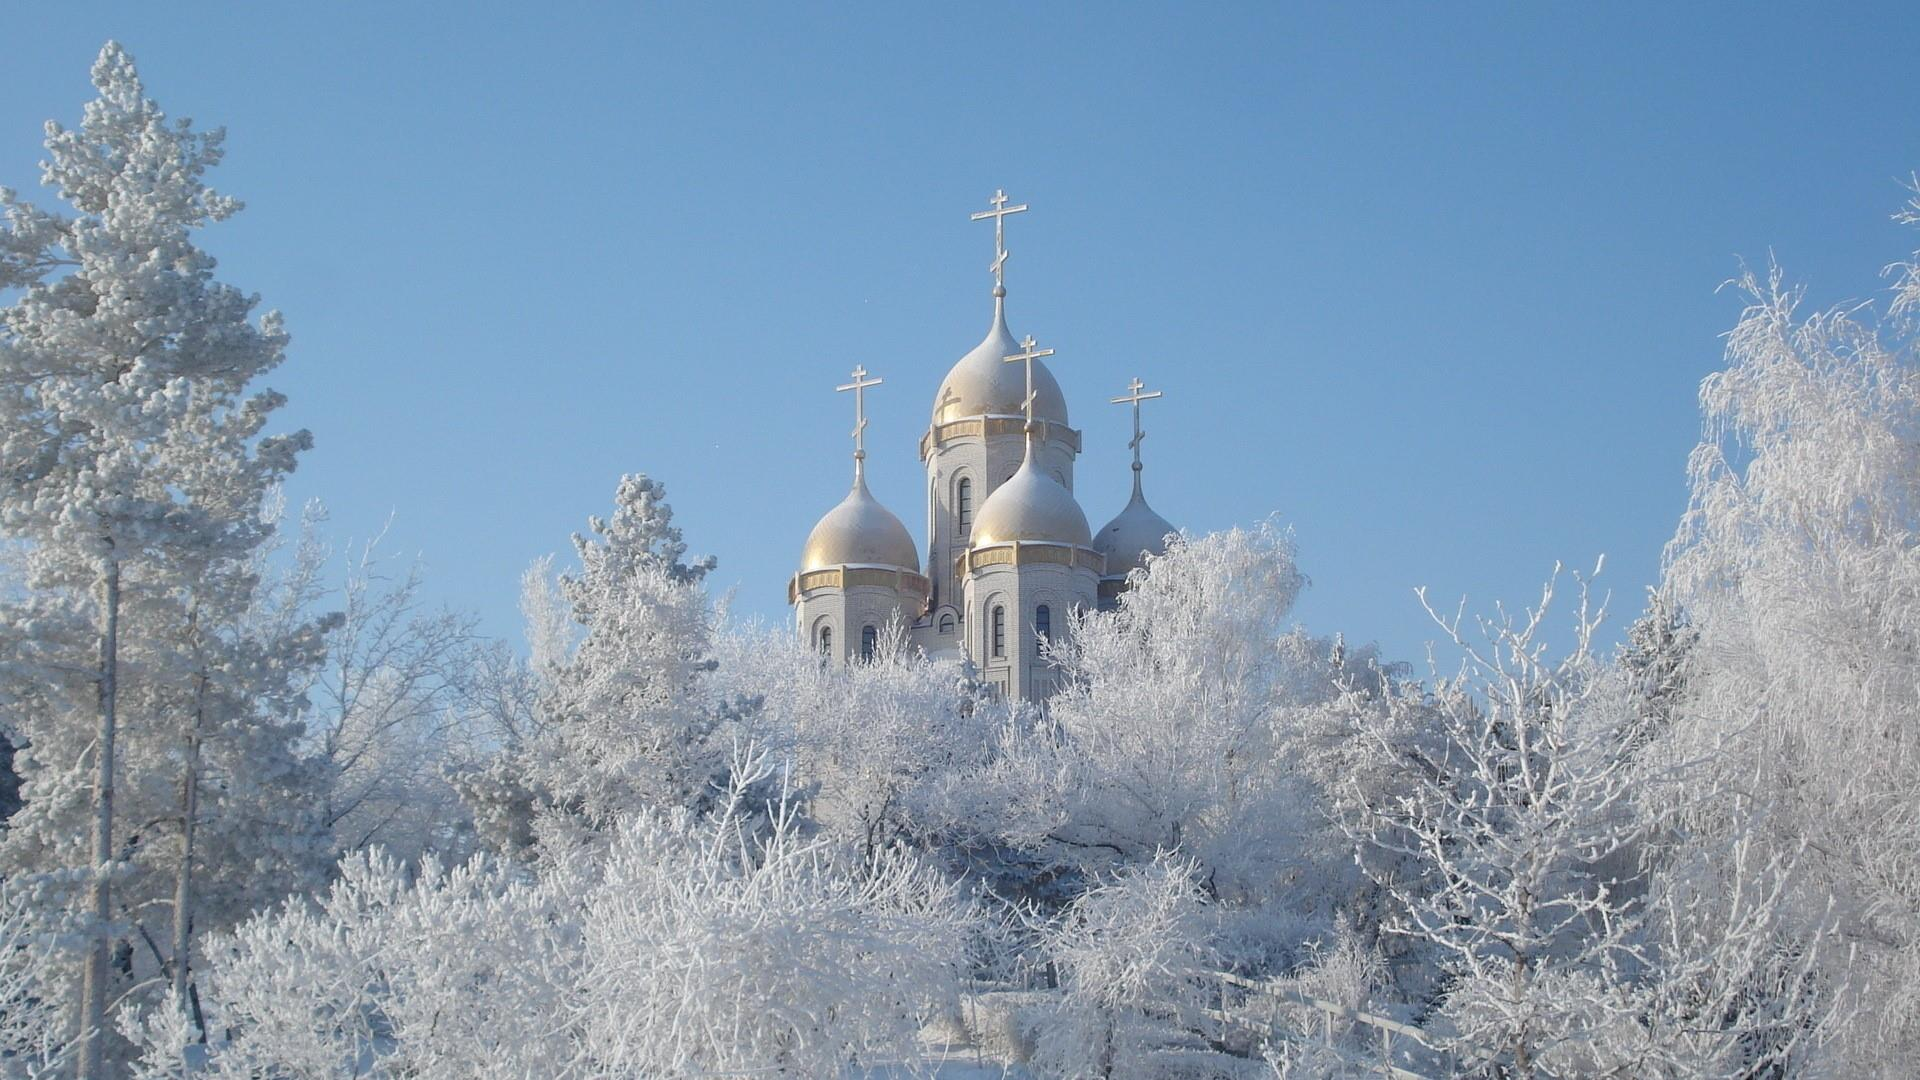 Winter with white trees and a church wallpaper